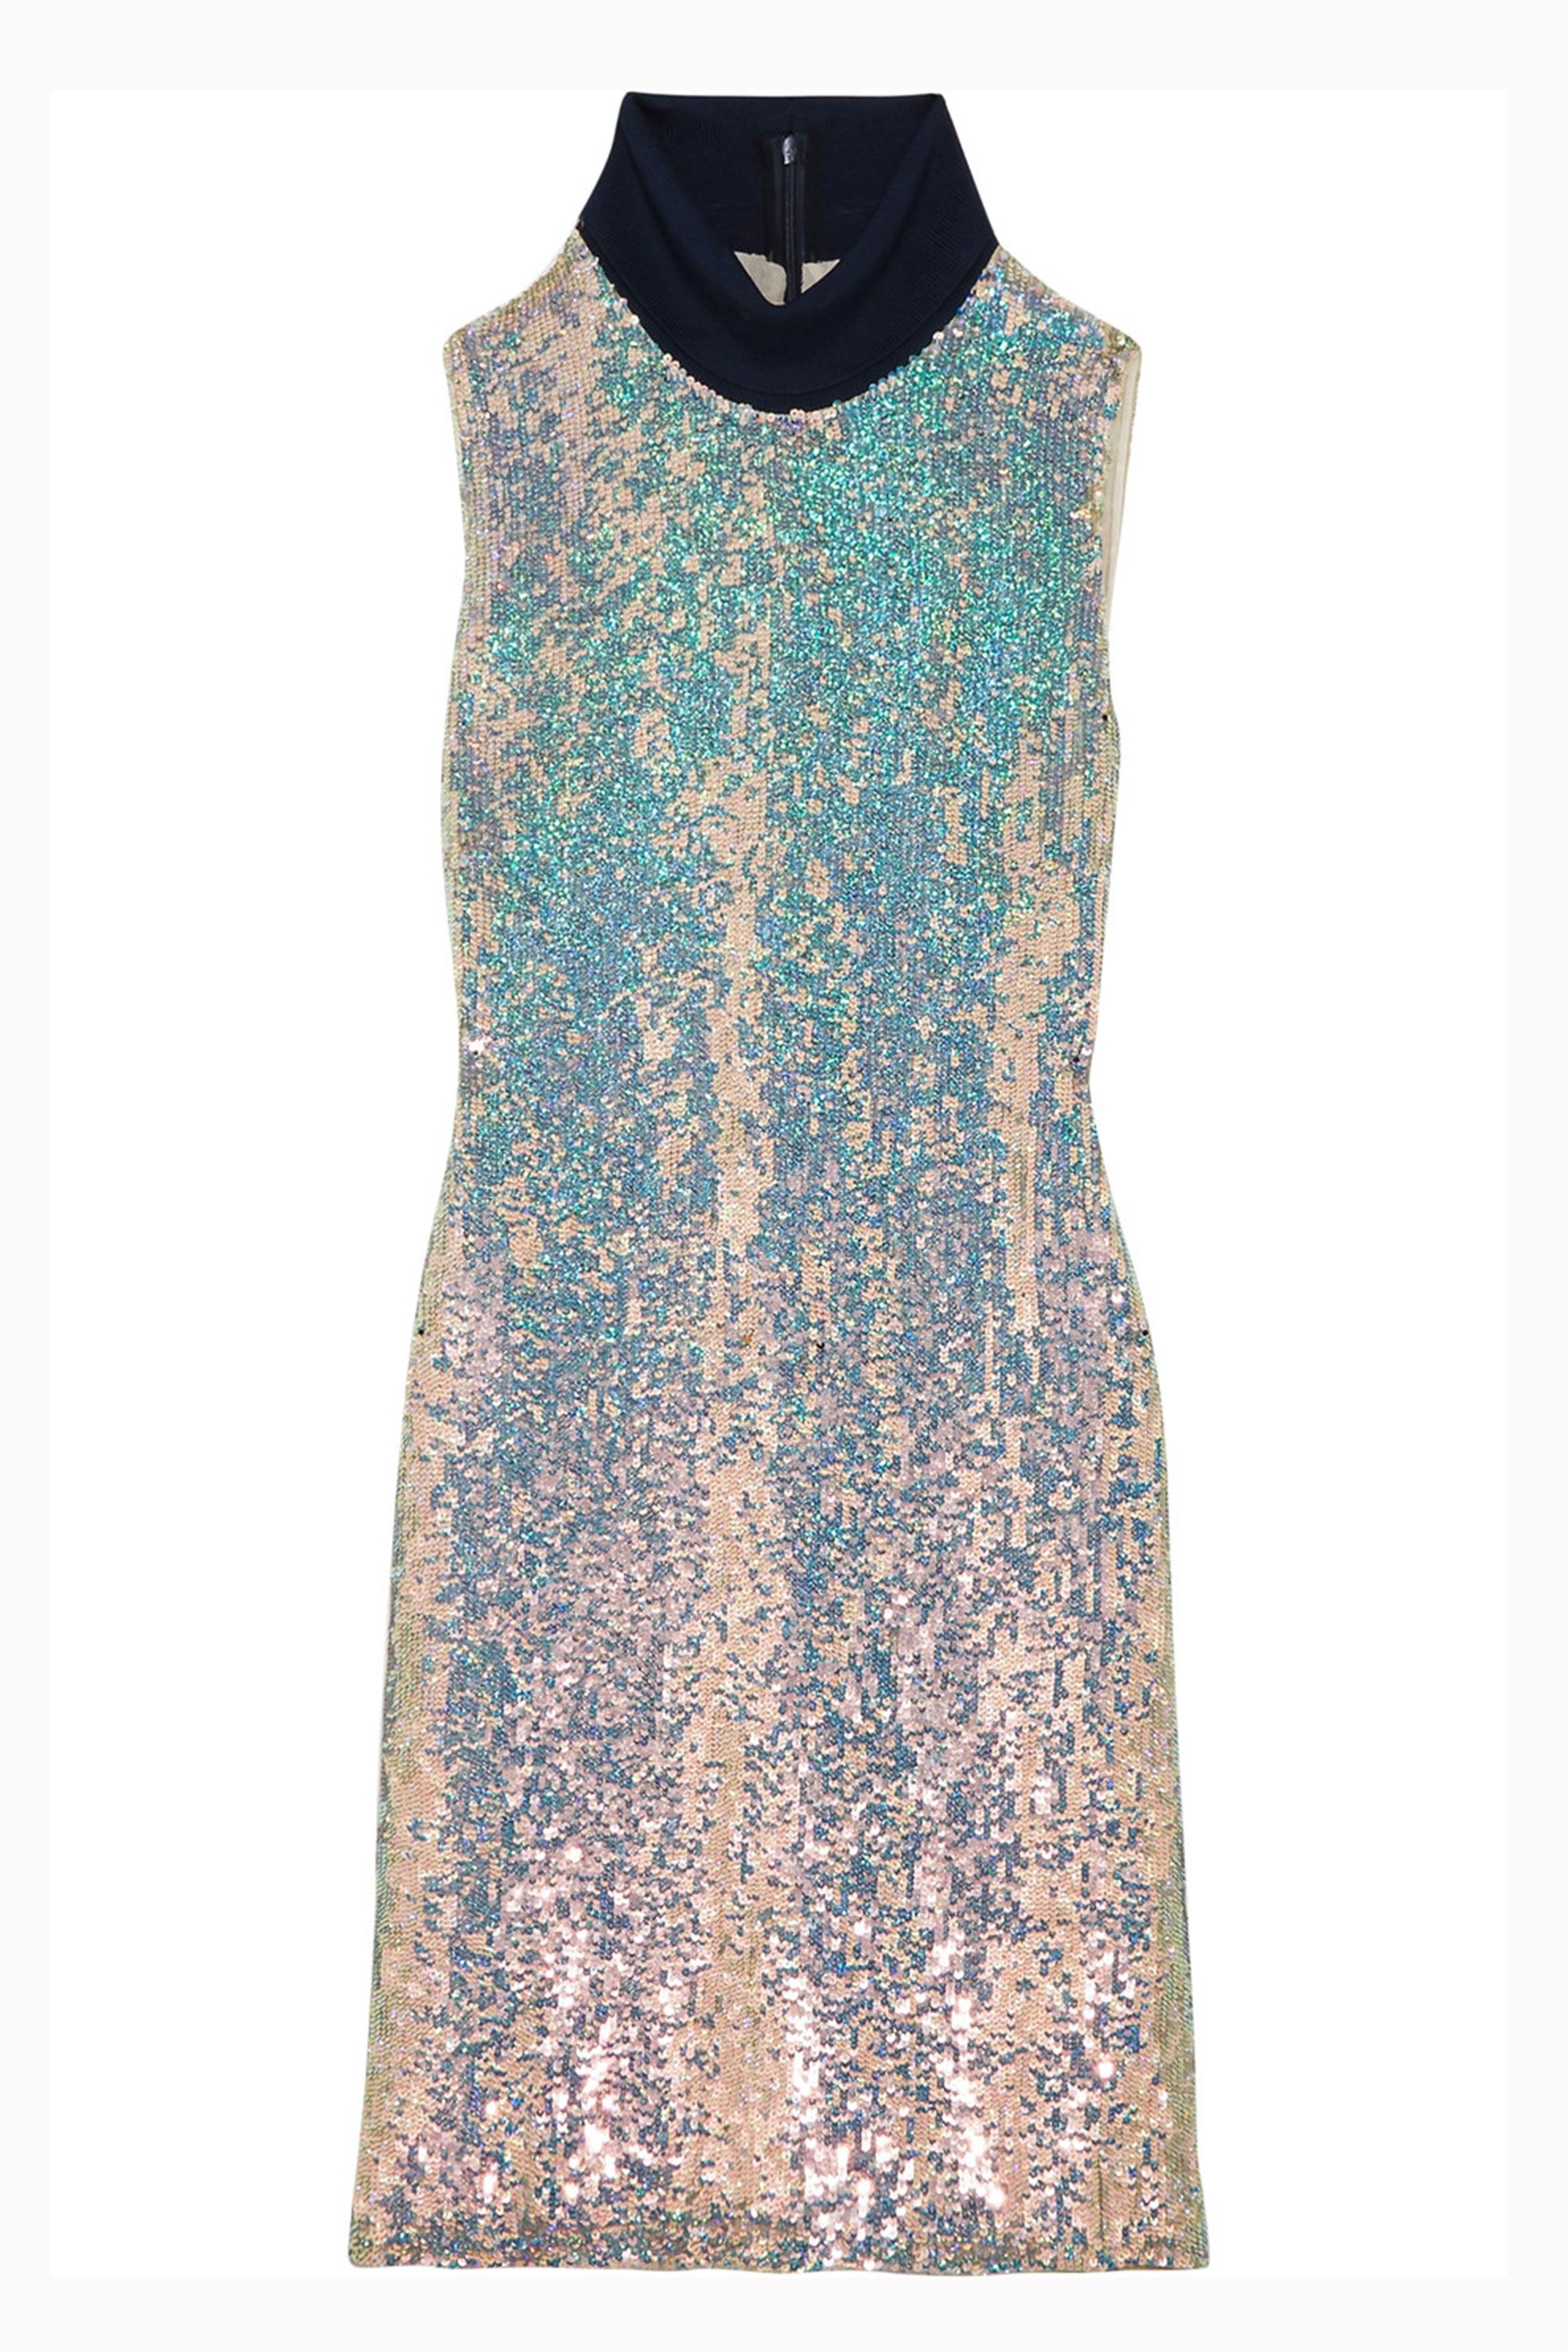 Best sequinned dresses for Christmas 2016